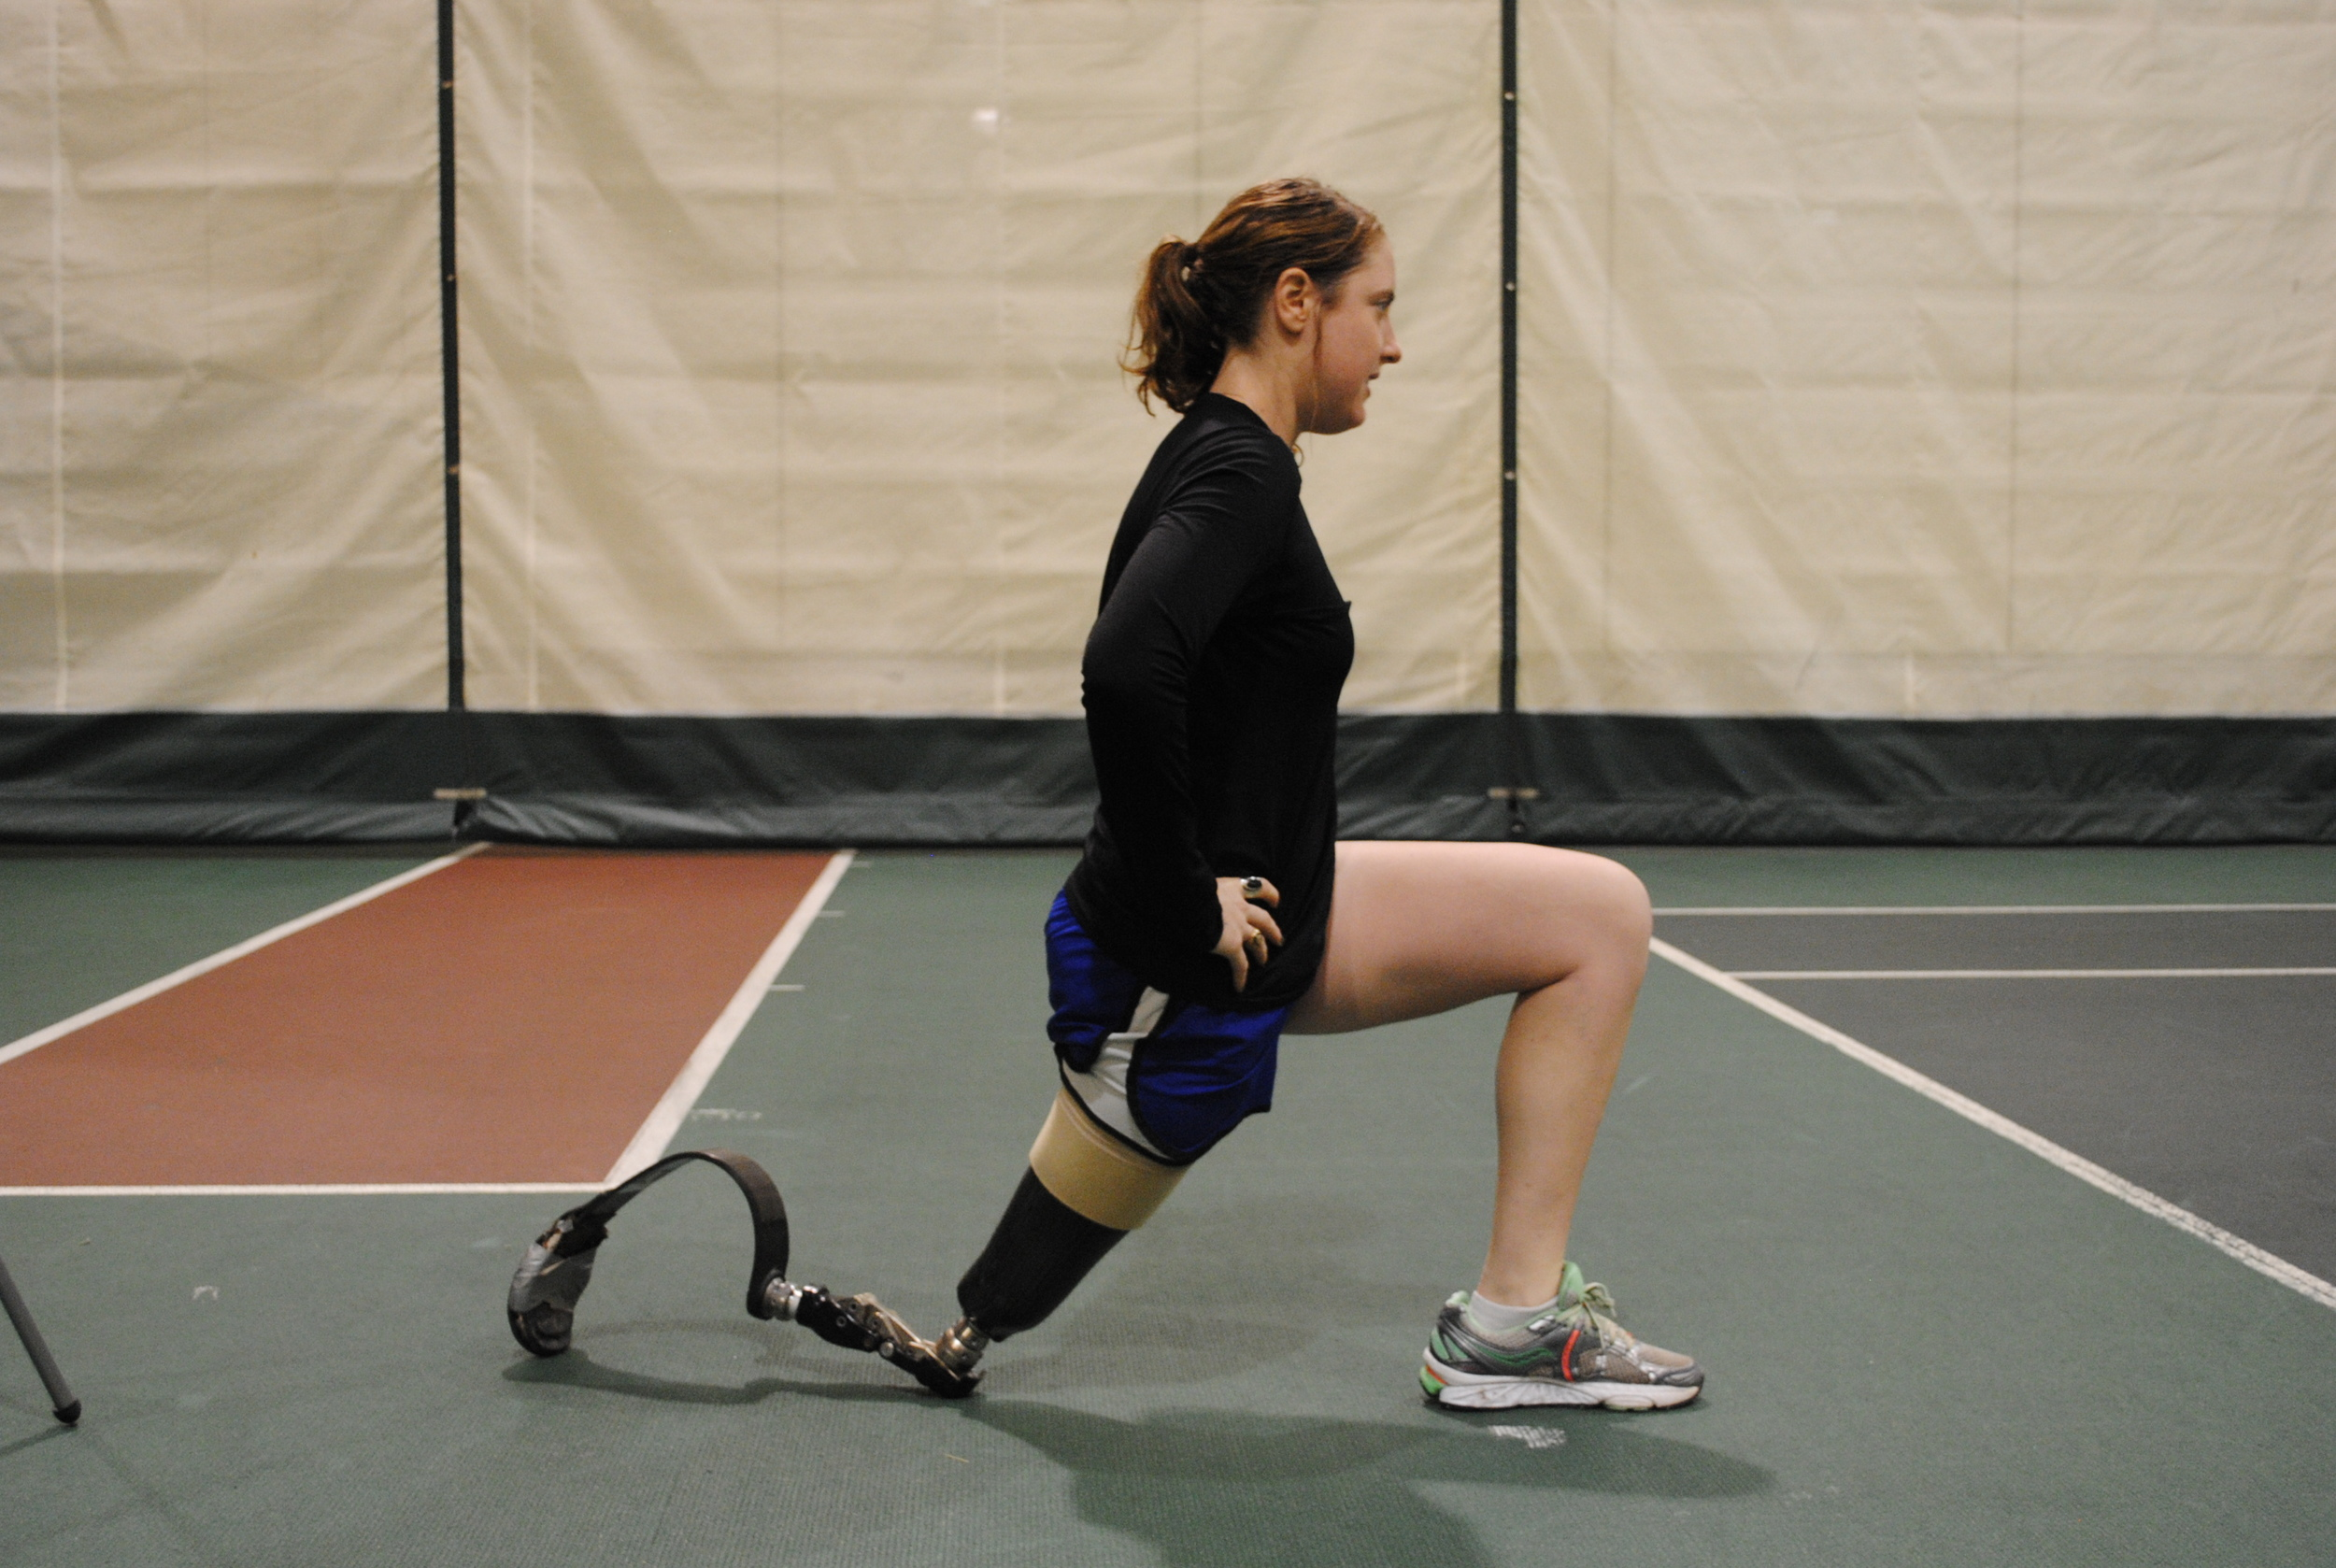 Stretching with your prosthesis